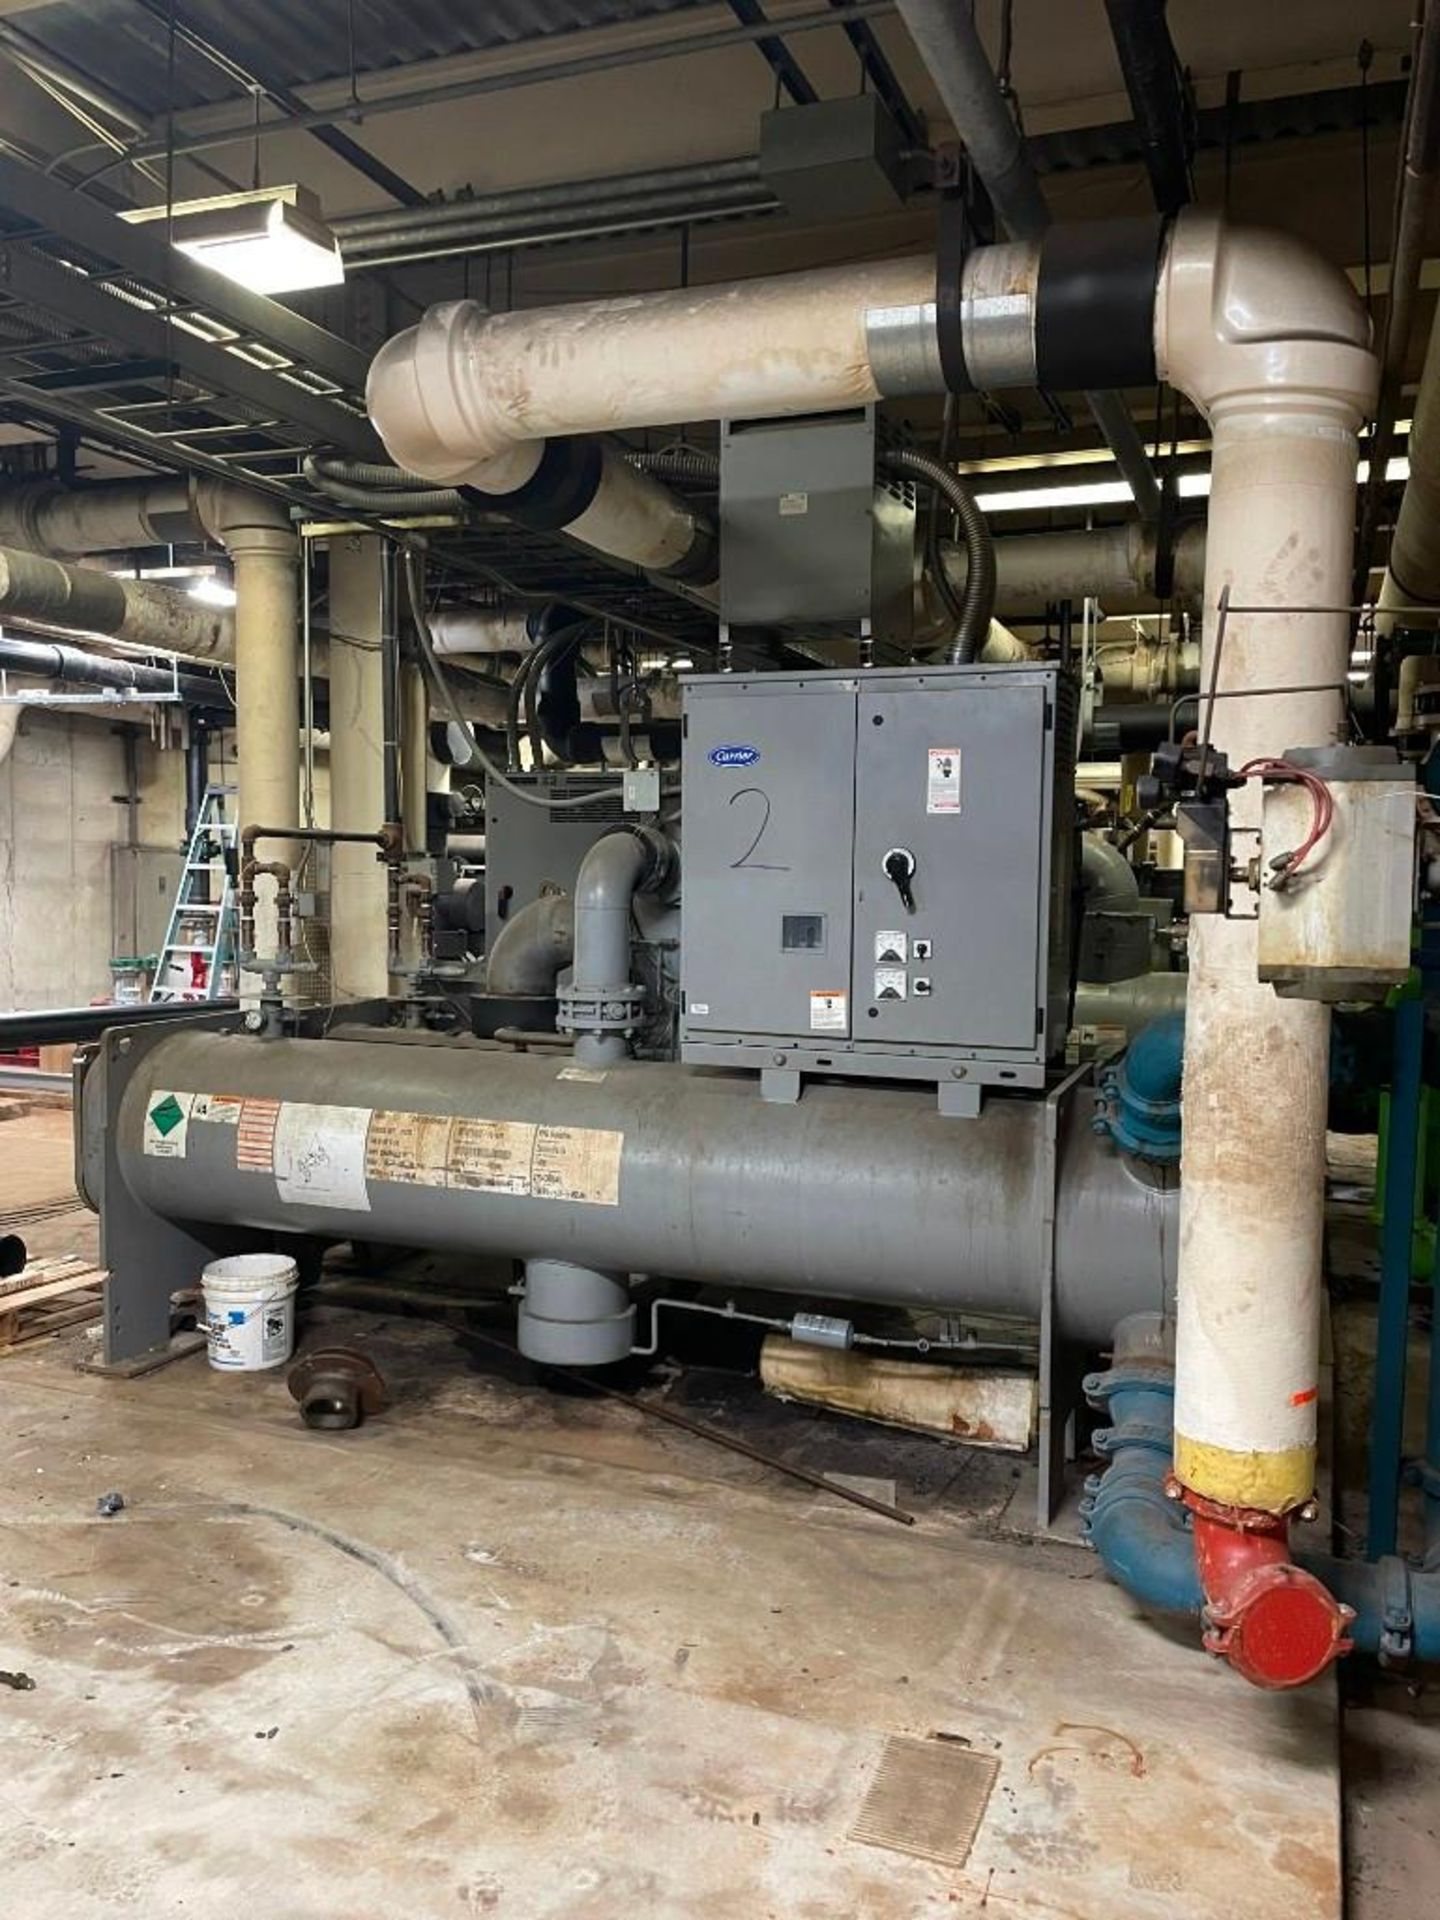 Carrier Aqua Edge 19XRV Water Chiller with Centrifugal Compressor - Image 2 of 9